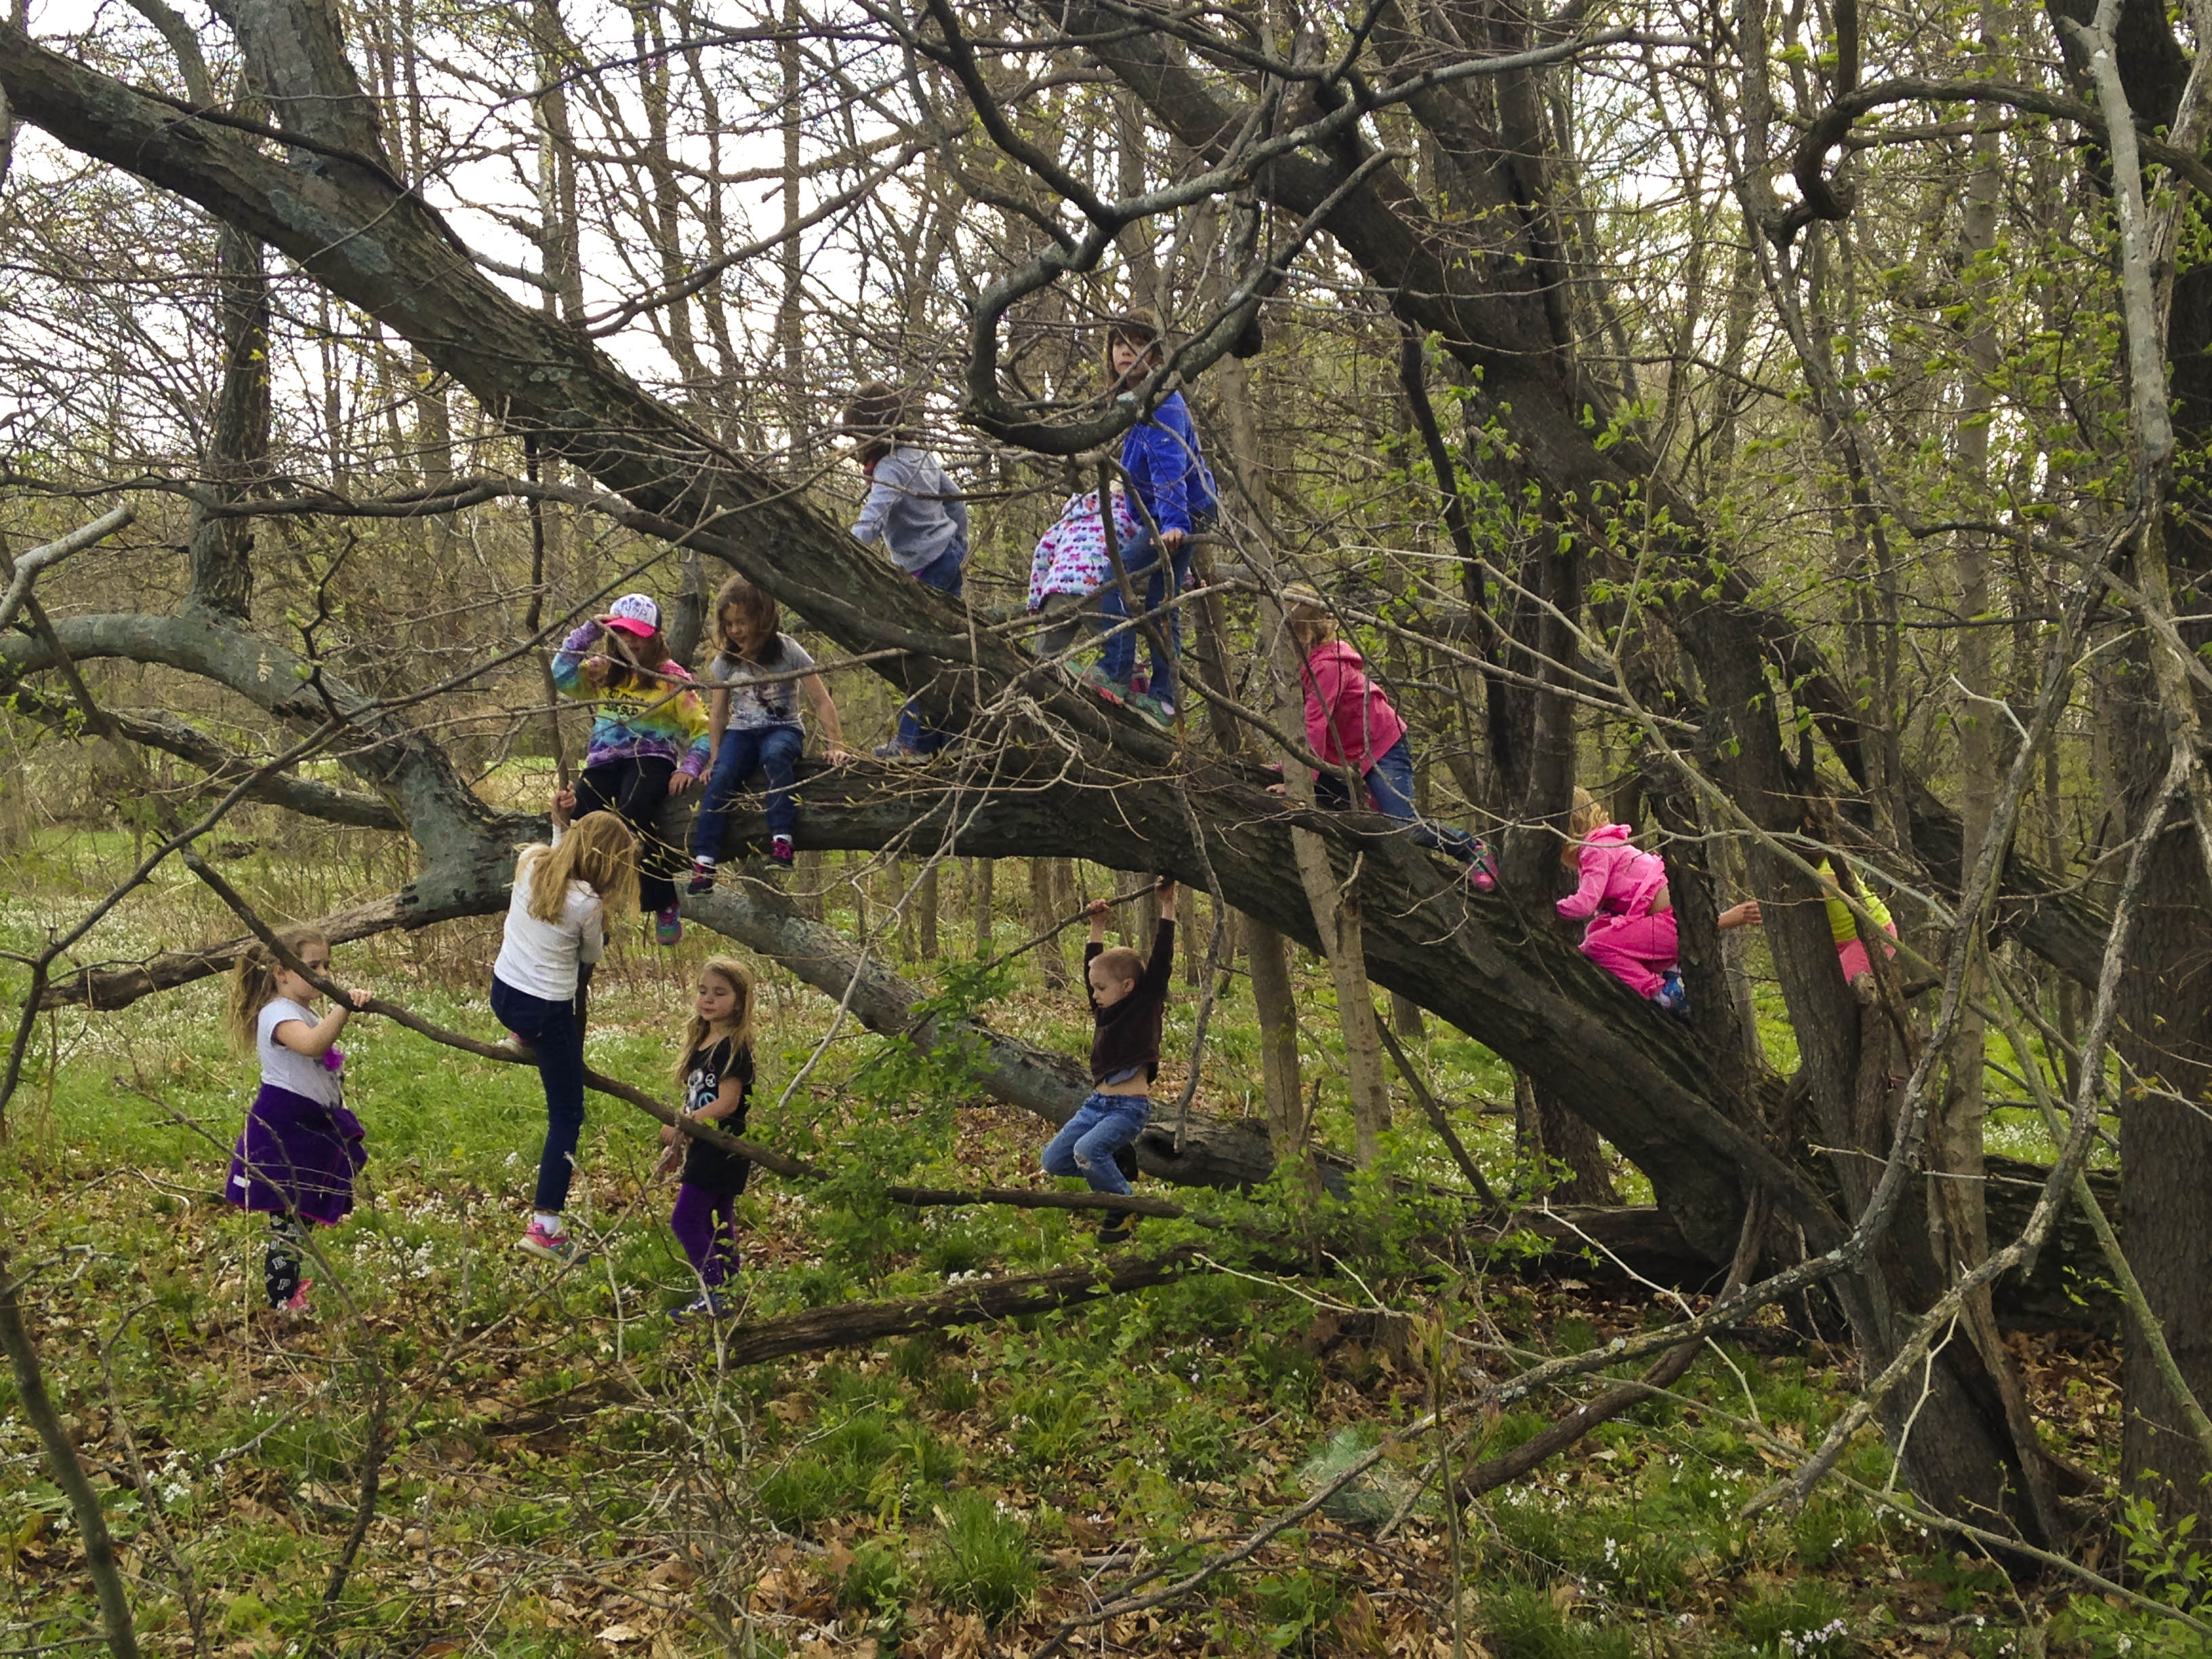 Risky Play Why Children Love It And >> Parents Stop Worrying And Let Your Child Climb Trees